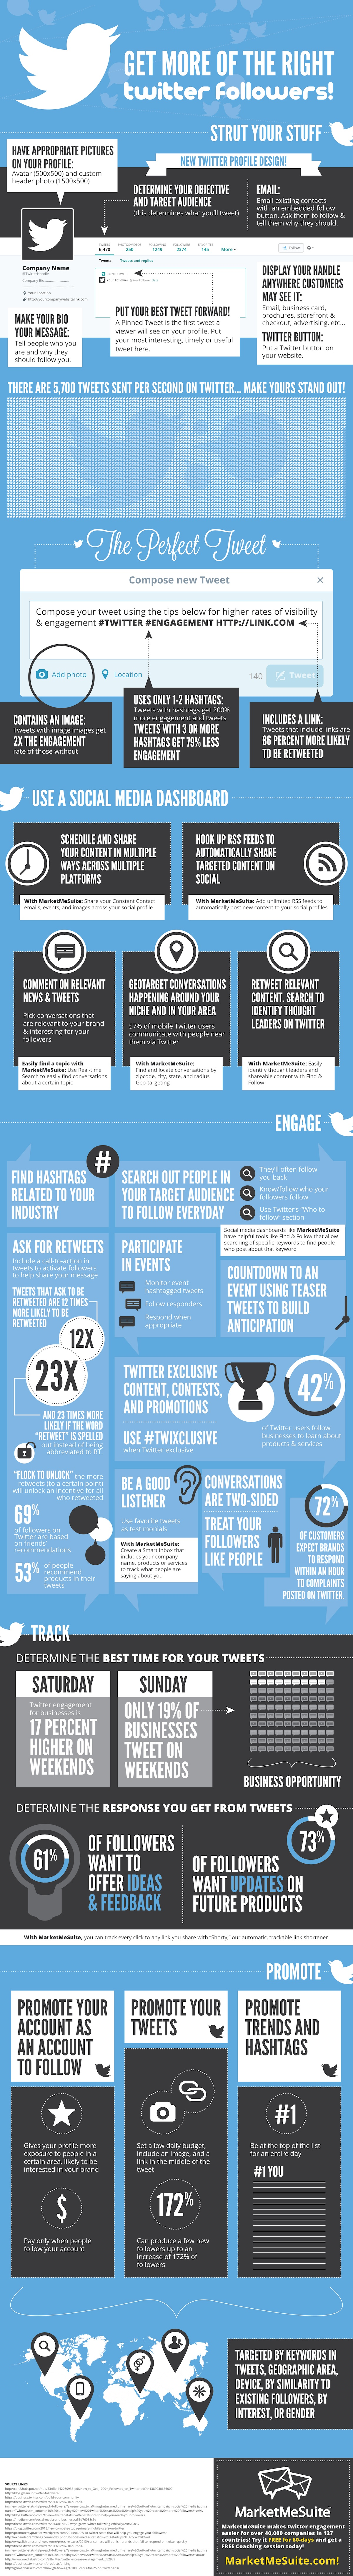 wersm_quality_twitter_followers_infographic